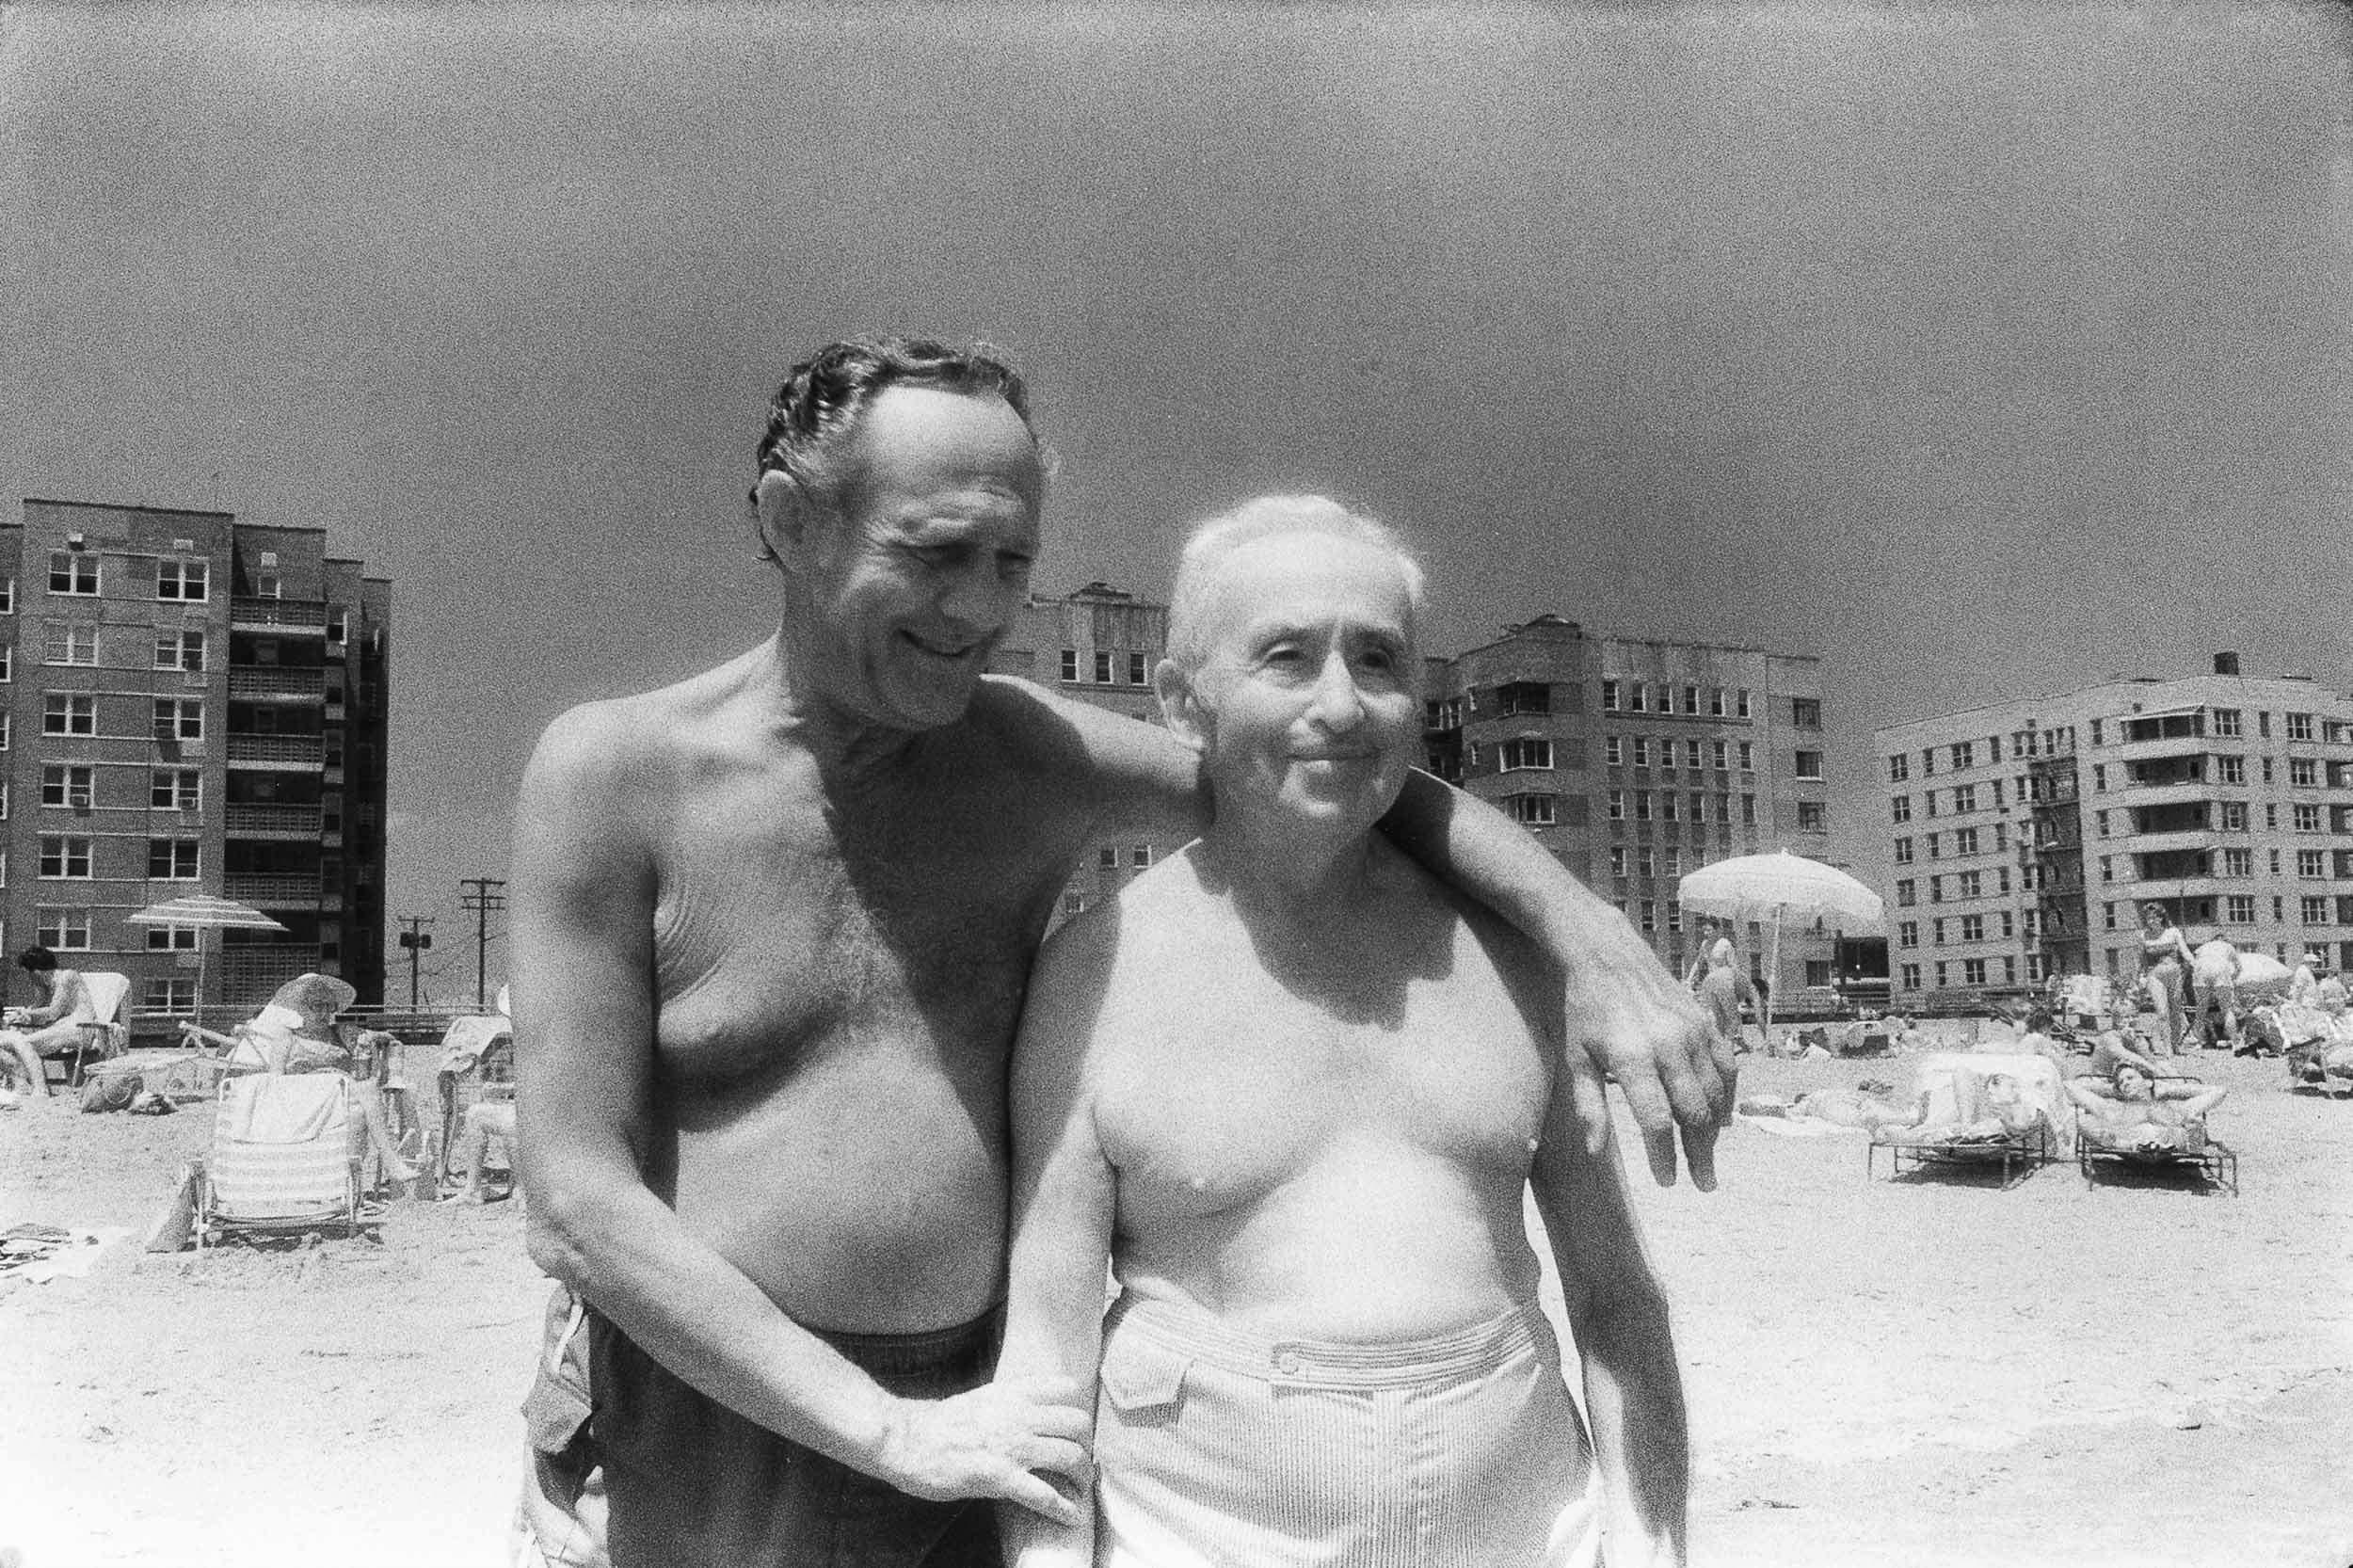 Barbara Alper- Photo of two men as friends on Rockaway Beach NYC